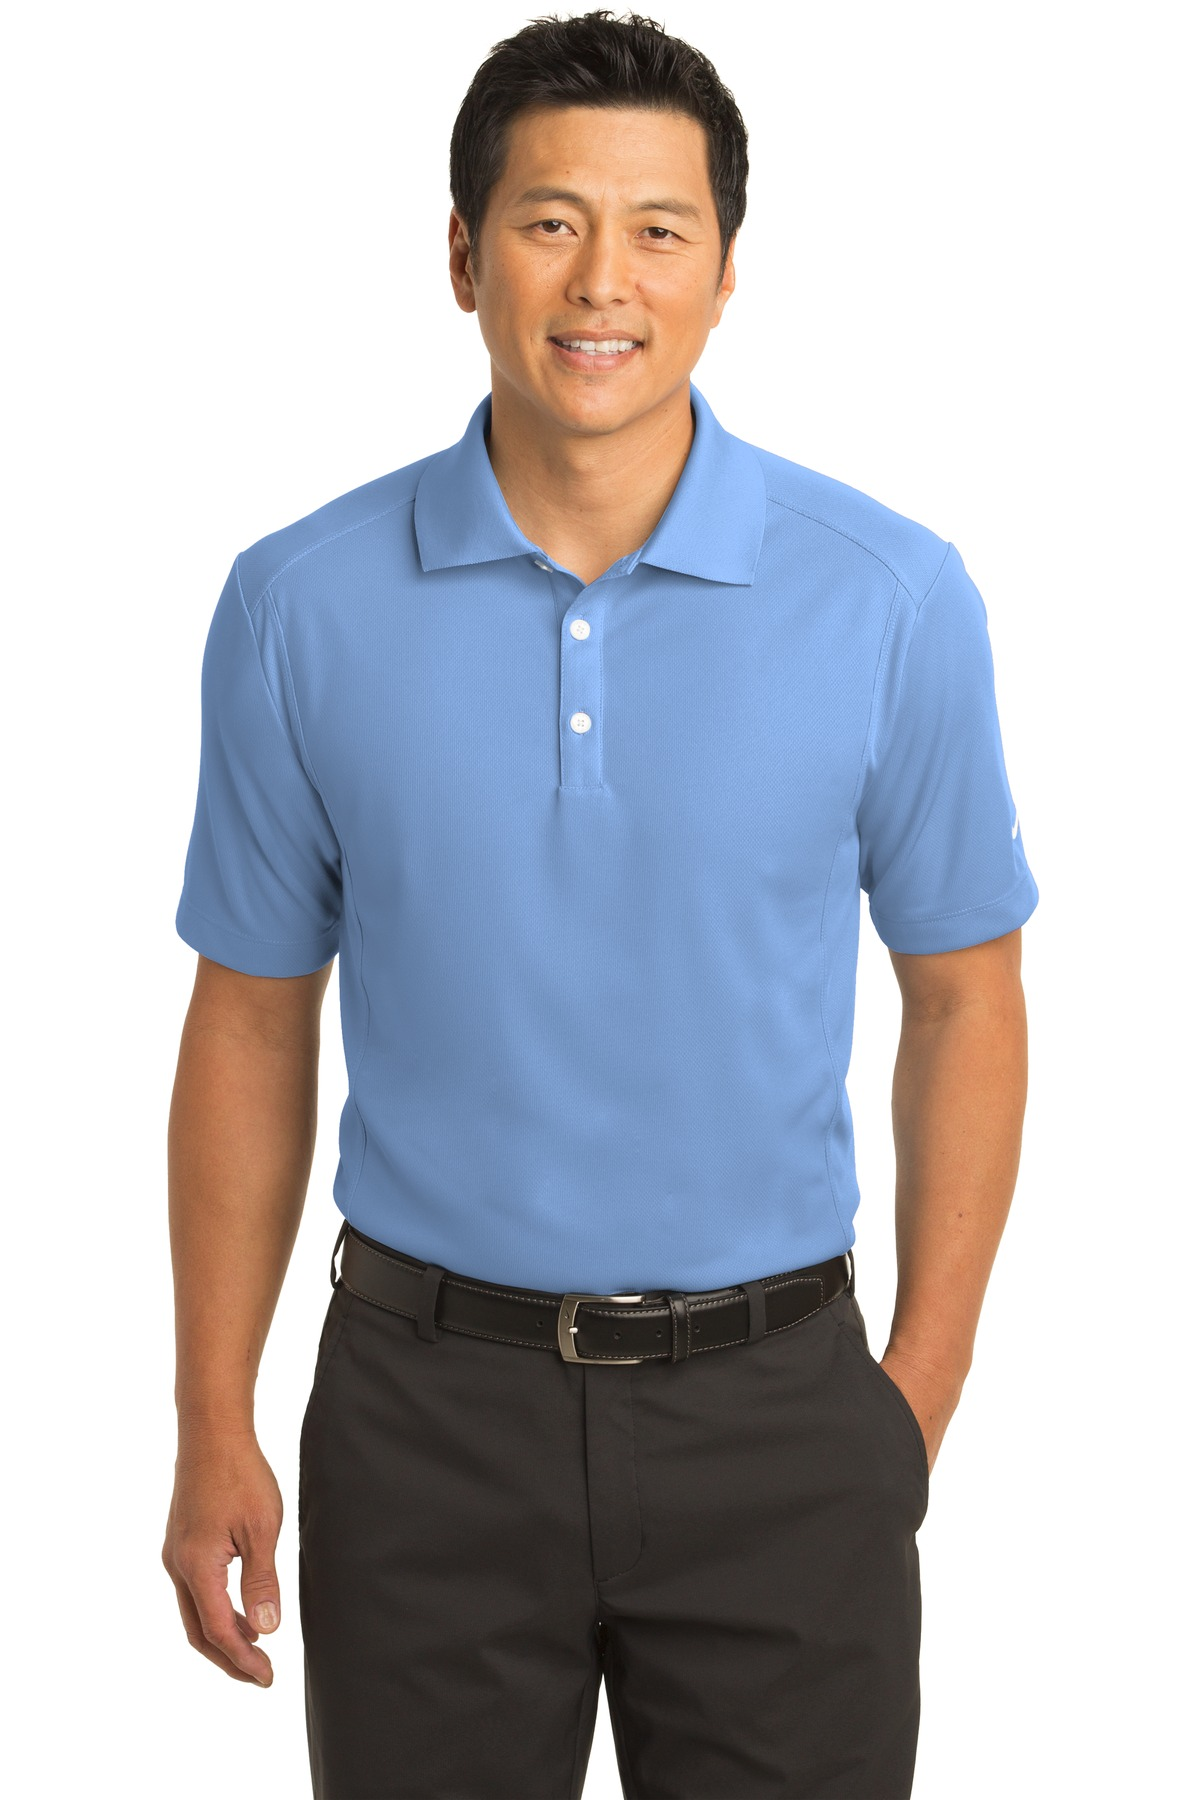 Nike Dri-FIT Classic Polo.  267020 - Light Blue